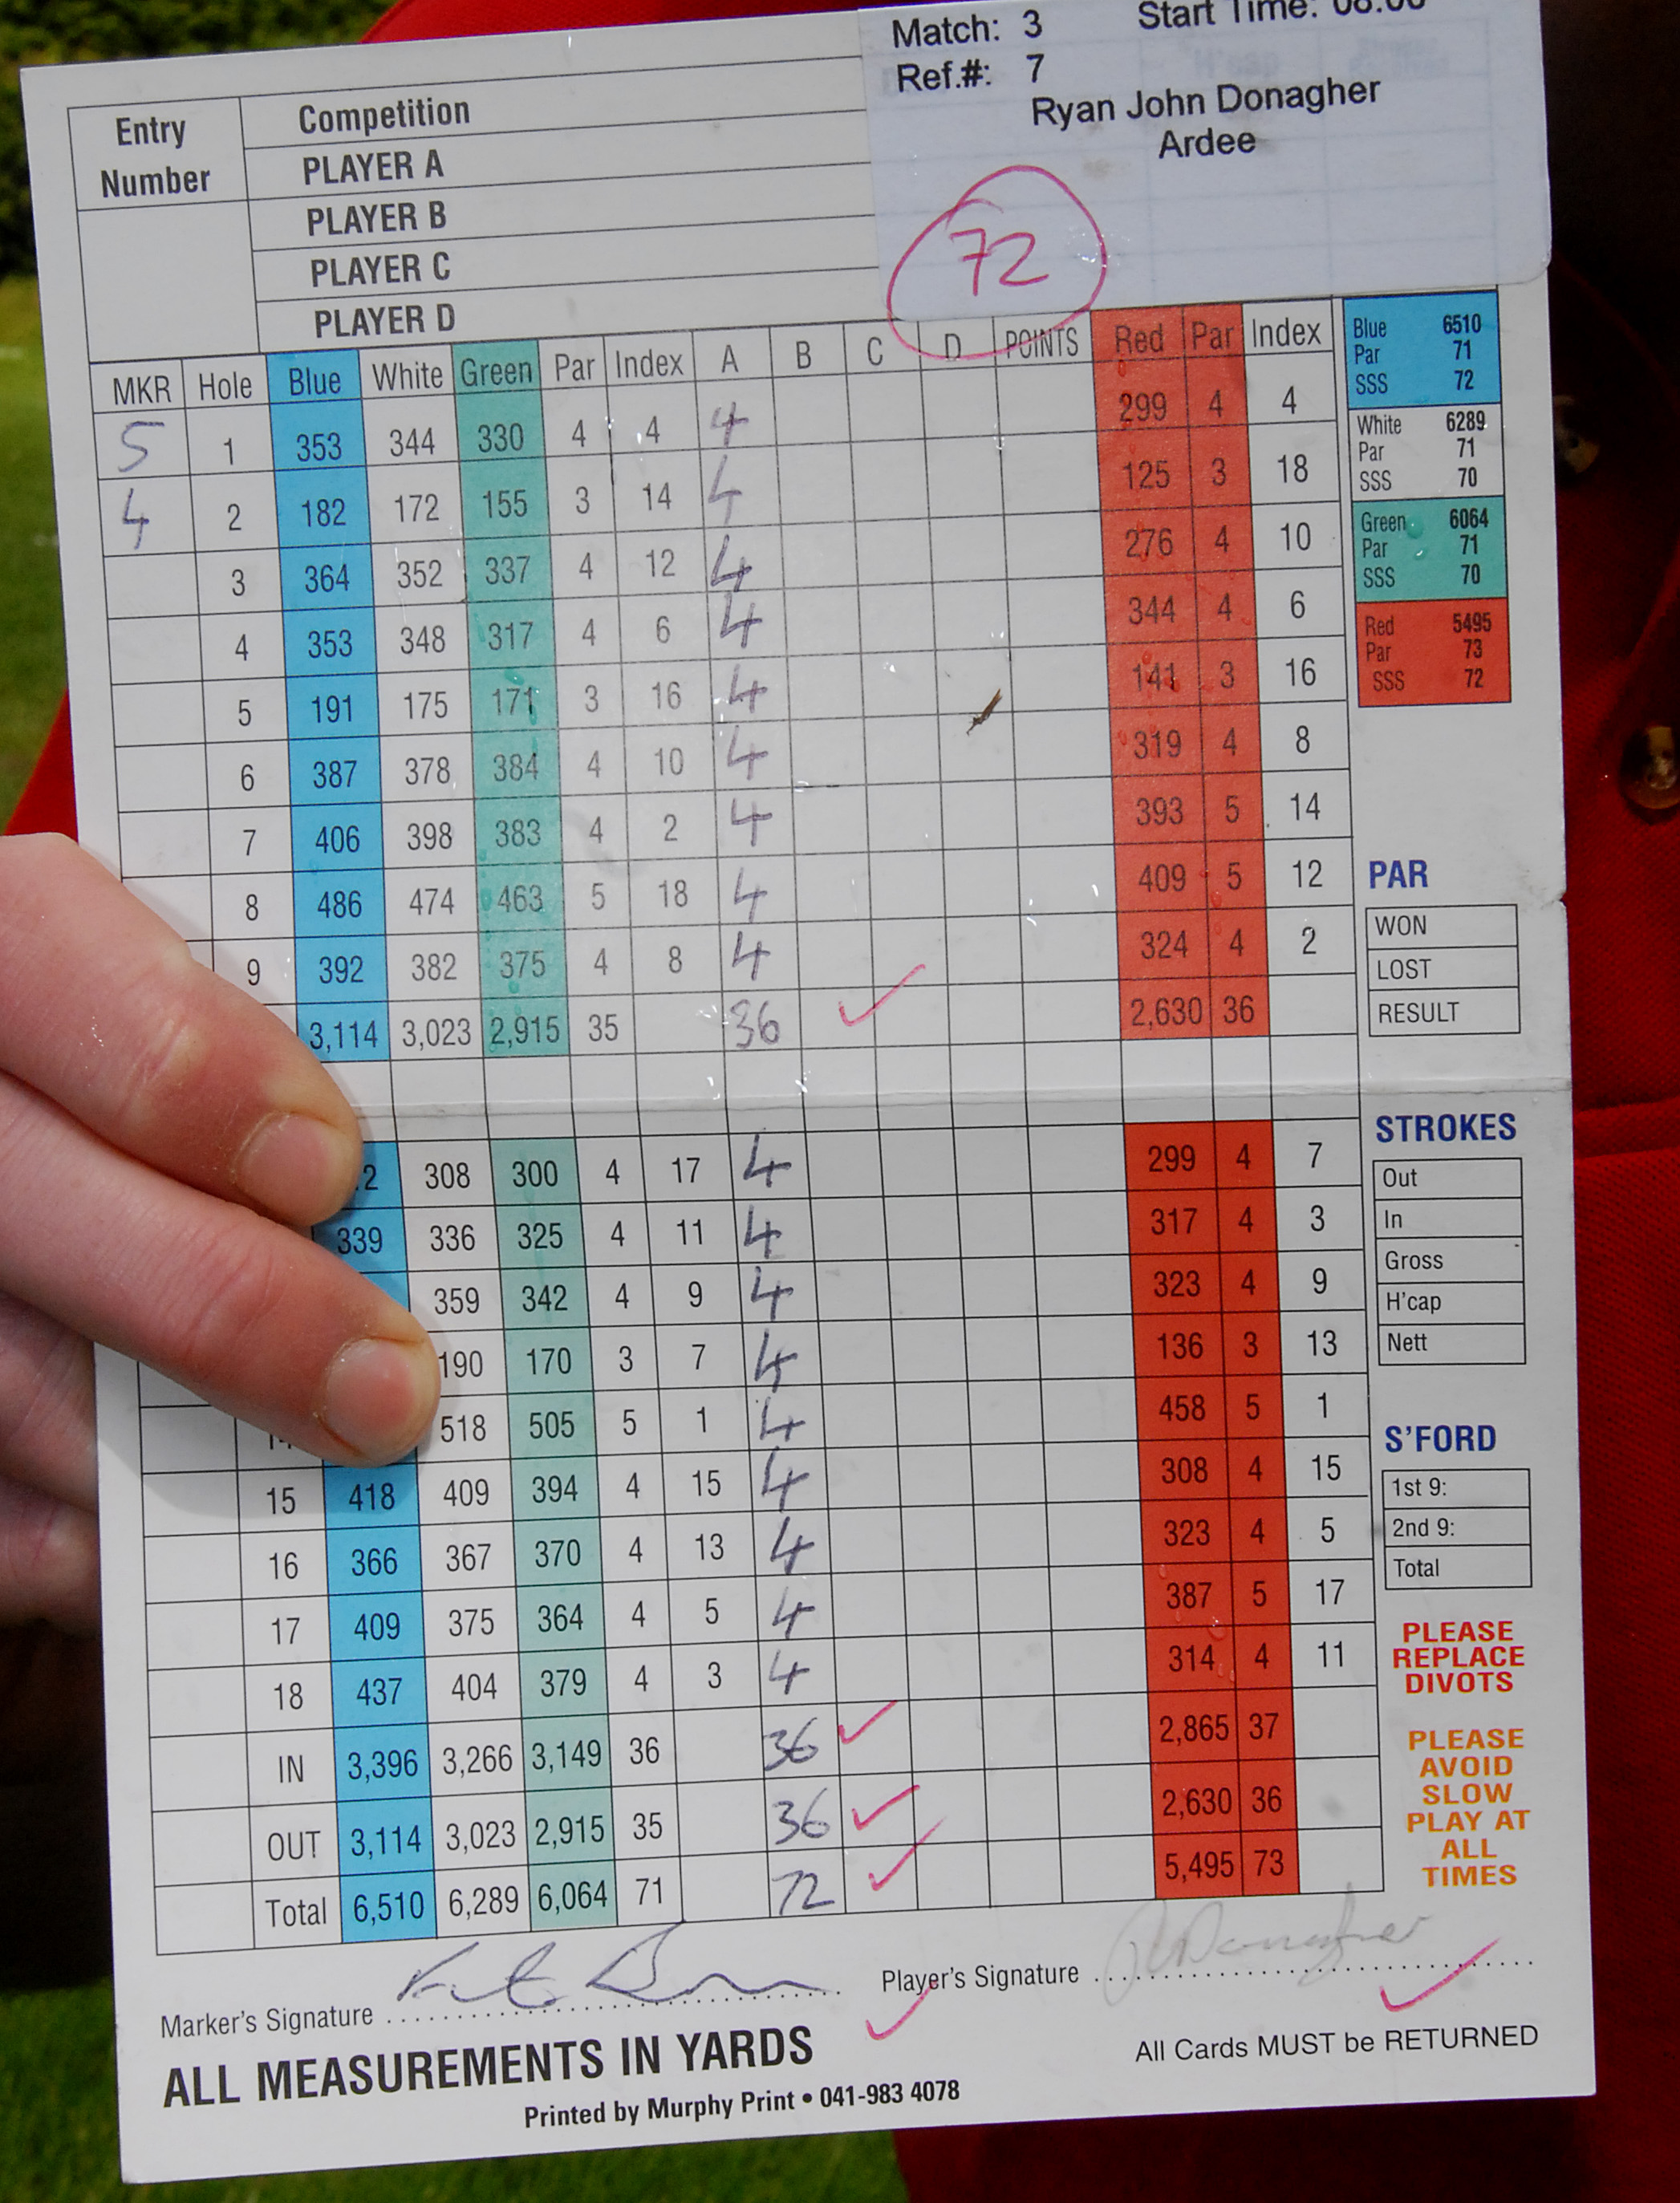 Template For Stableford Golf Scoring Spreadsheet For Stableford Golf Scoring Spreadsheet Xls